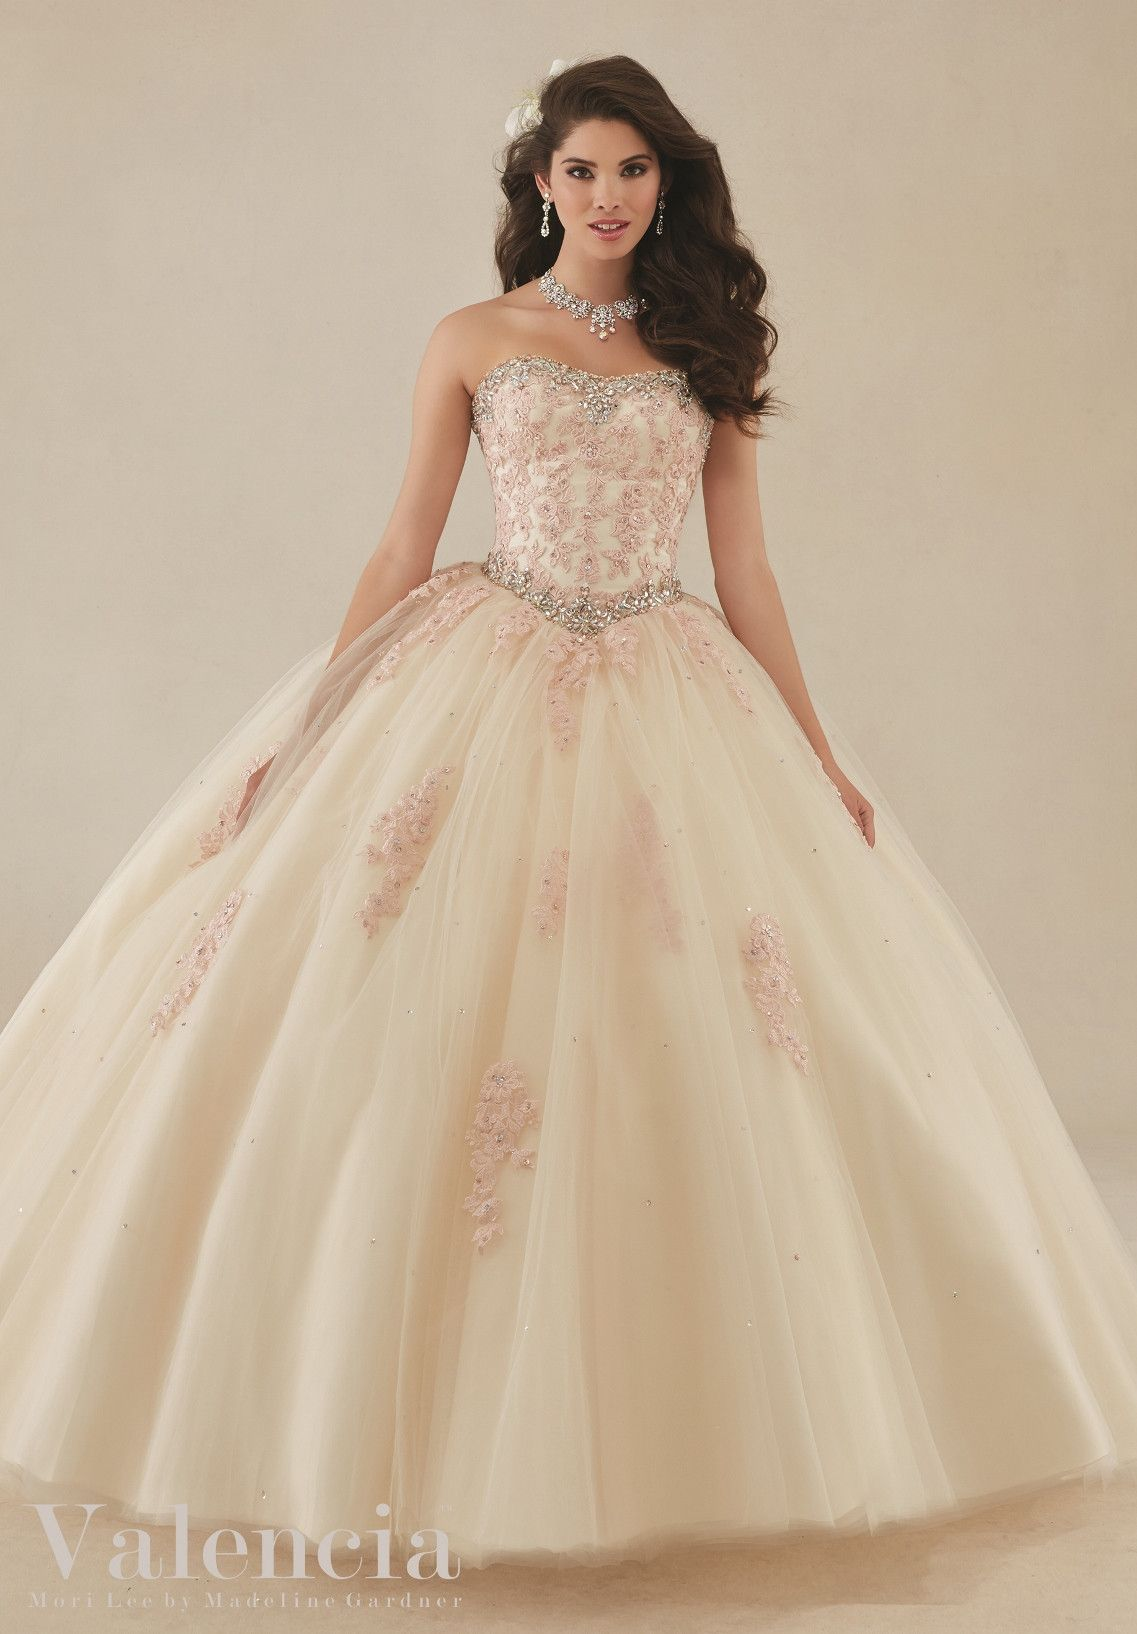 Mori Lee Valencia Quinceanera Dress 89086 | Kleider, Spitzen ...